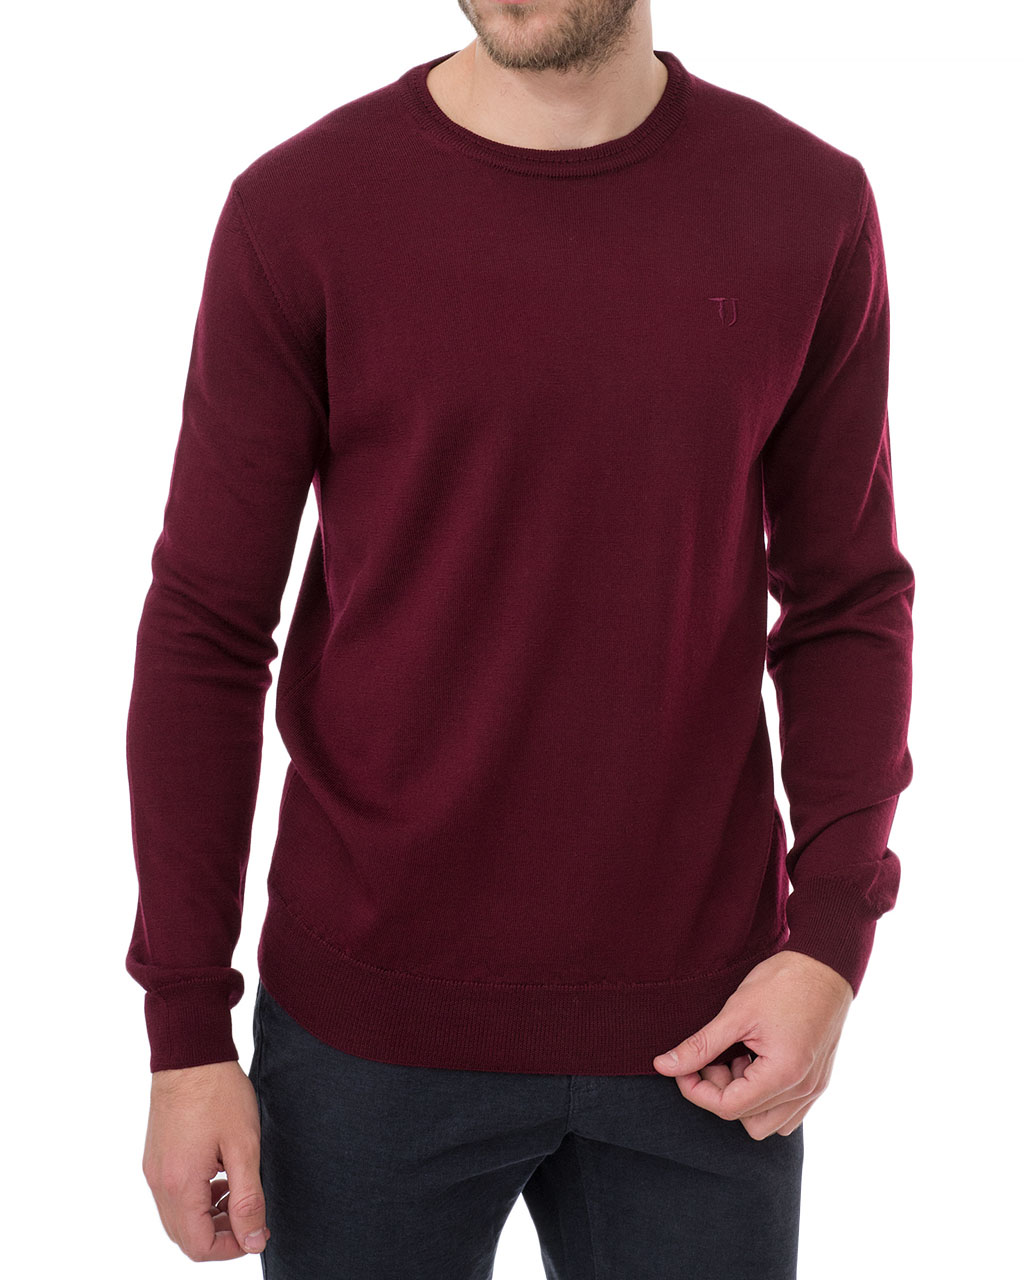 Men's jumper 52M00257-OF000422-R145/19-20 (5)